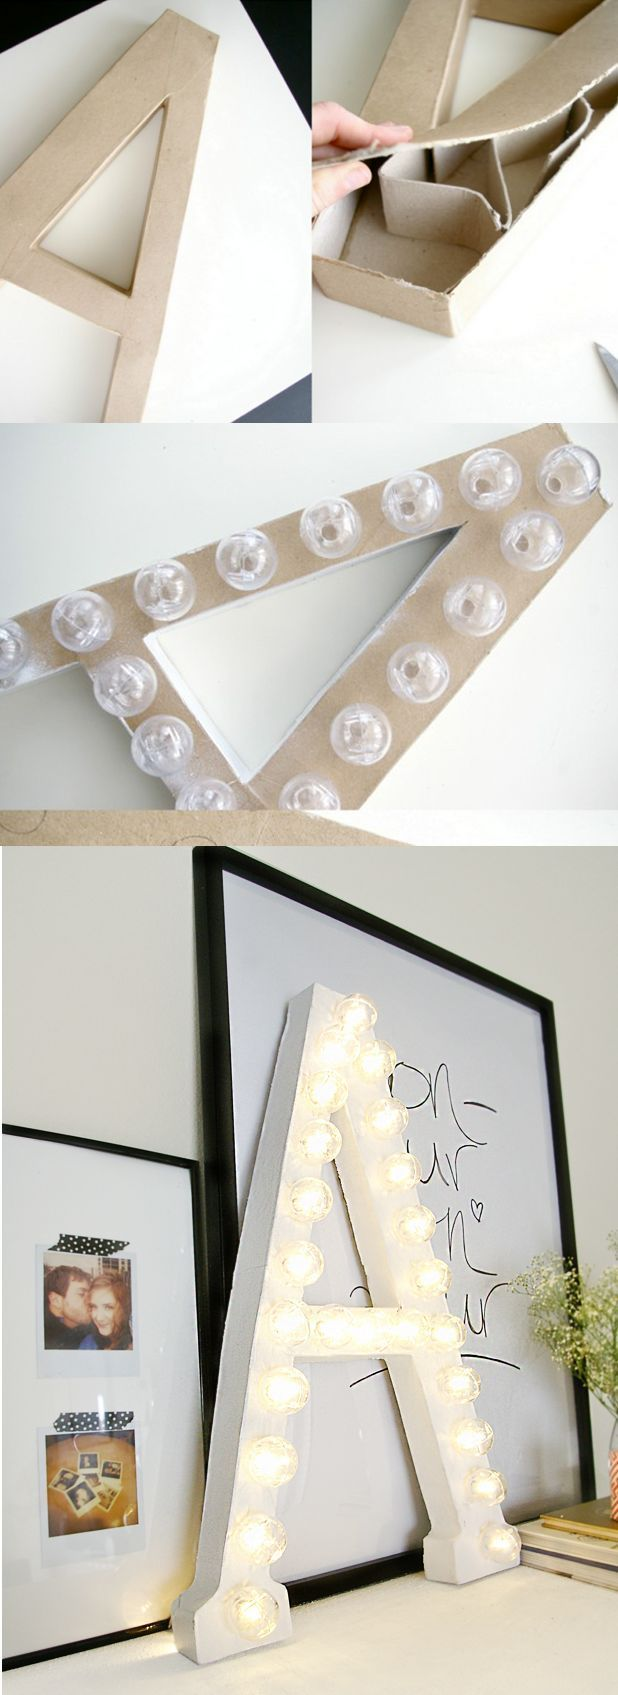 DIY marquee letters with string lights and 3d cardboard letters